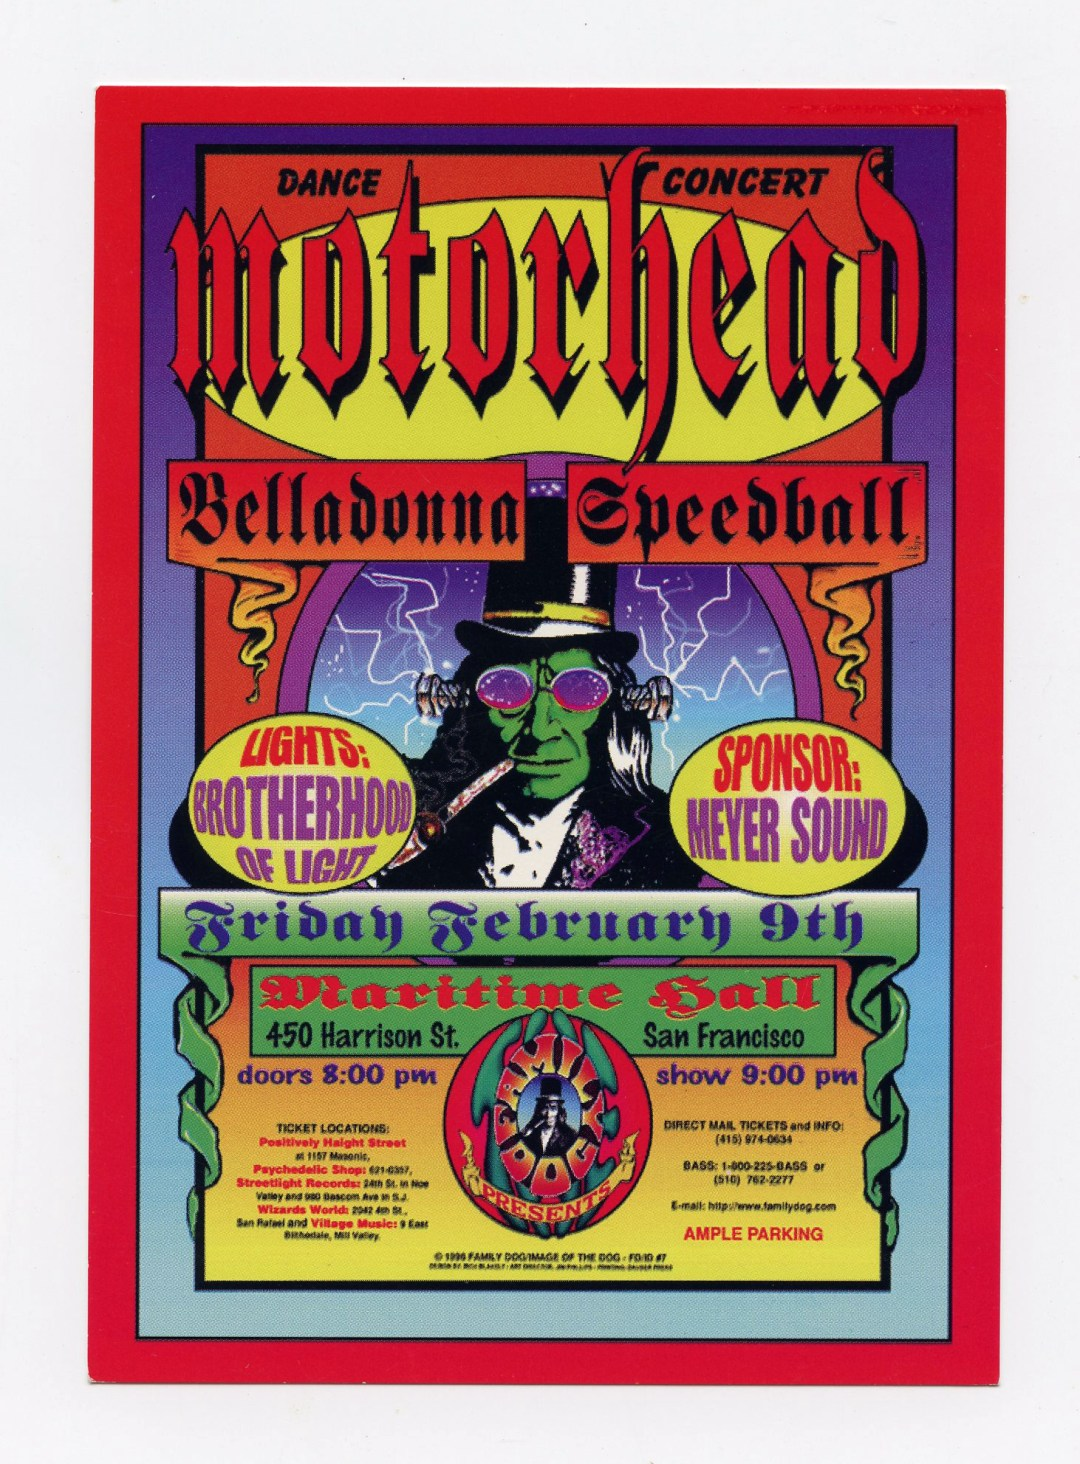 Maritime Hall 1995 Feb Handbill Motorhead Bellasonna Speedball